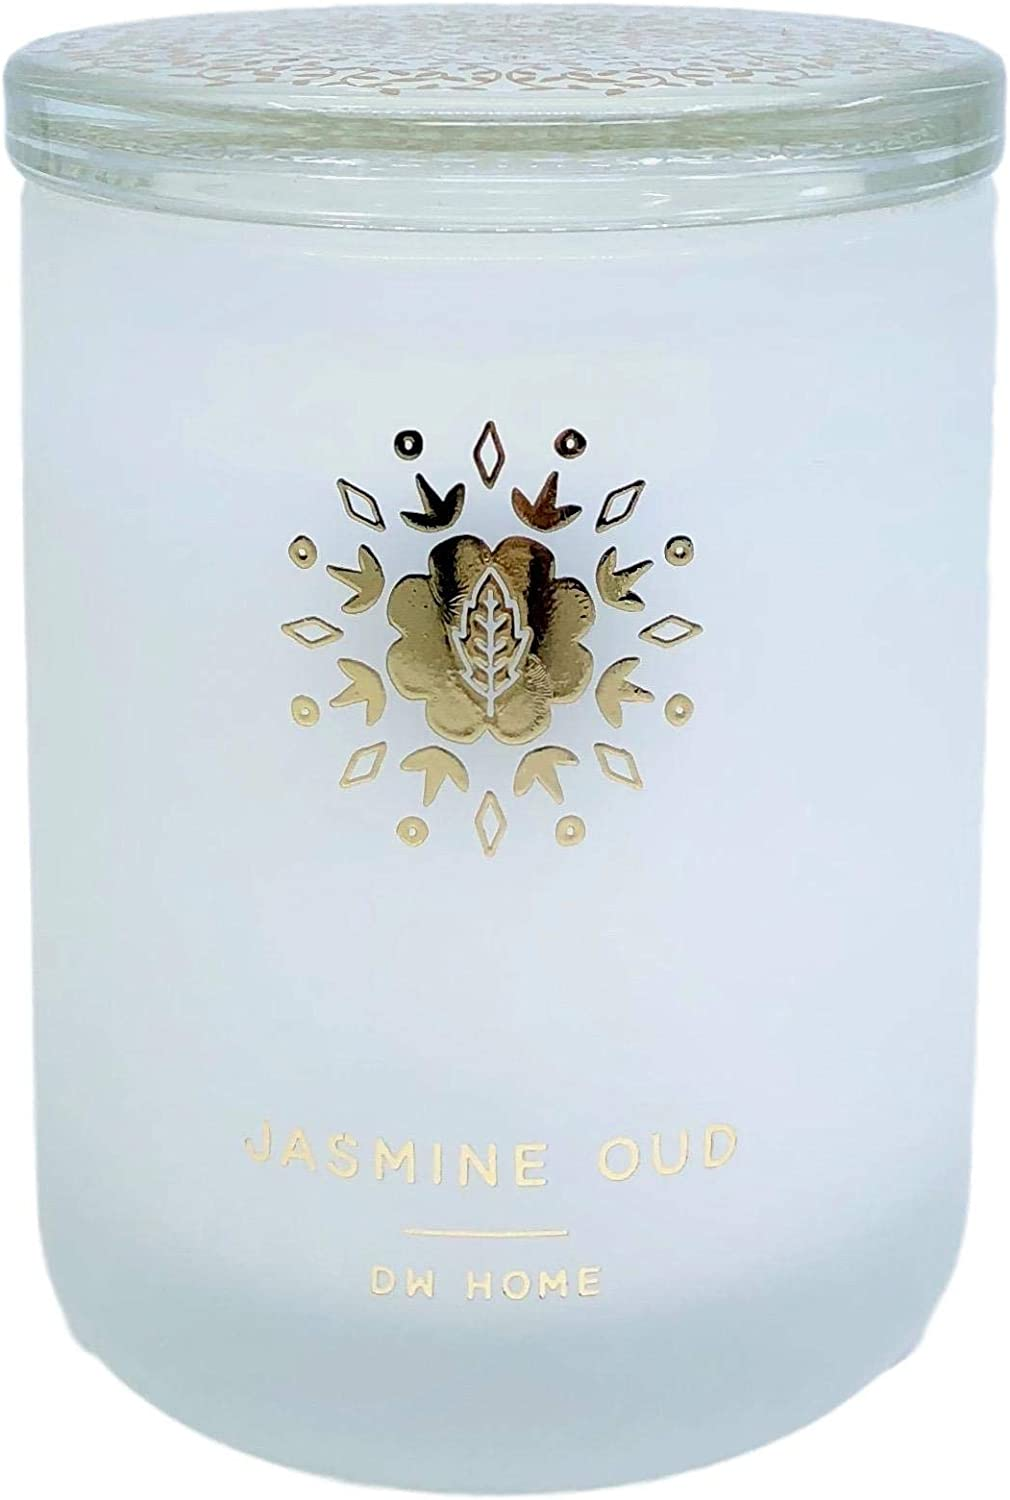 DW Home Jasmine Oud Scented Candle